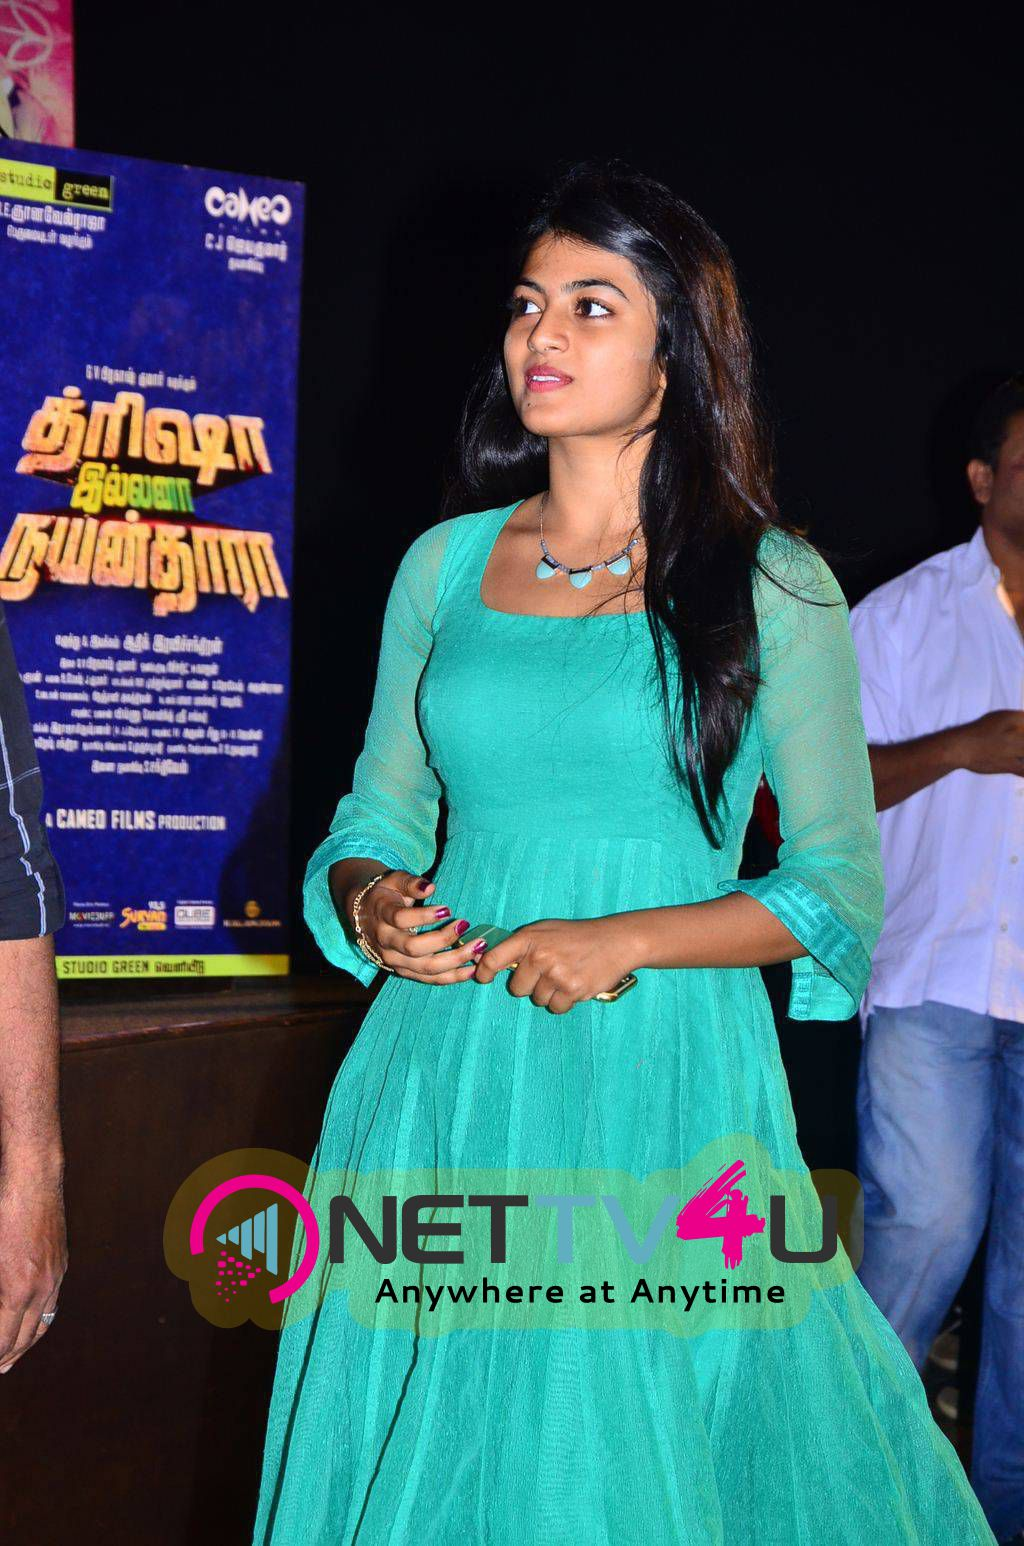 Latest Photos Of Actress Anandhi Jayakumar At Trisha Illana Nayanthara Movie Trailer Launch